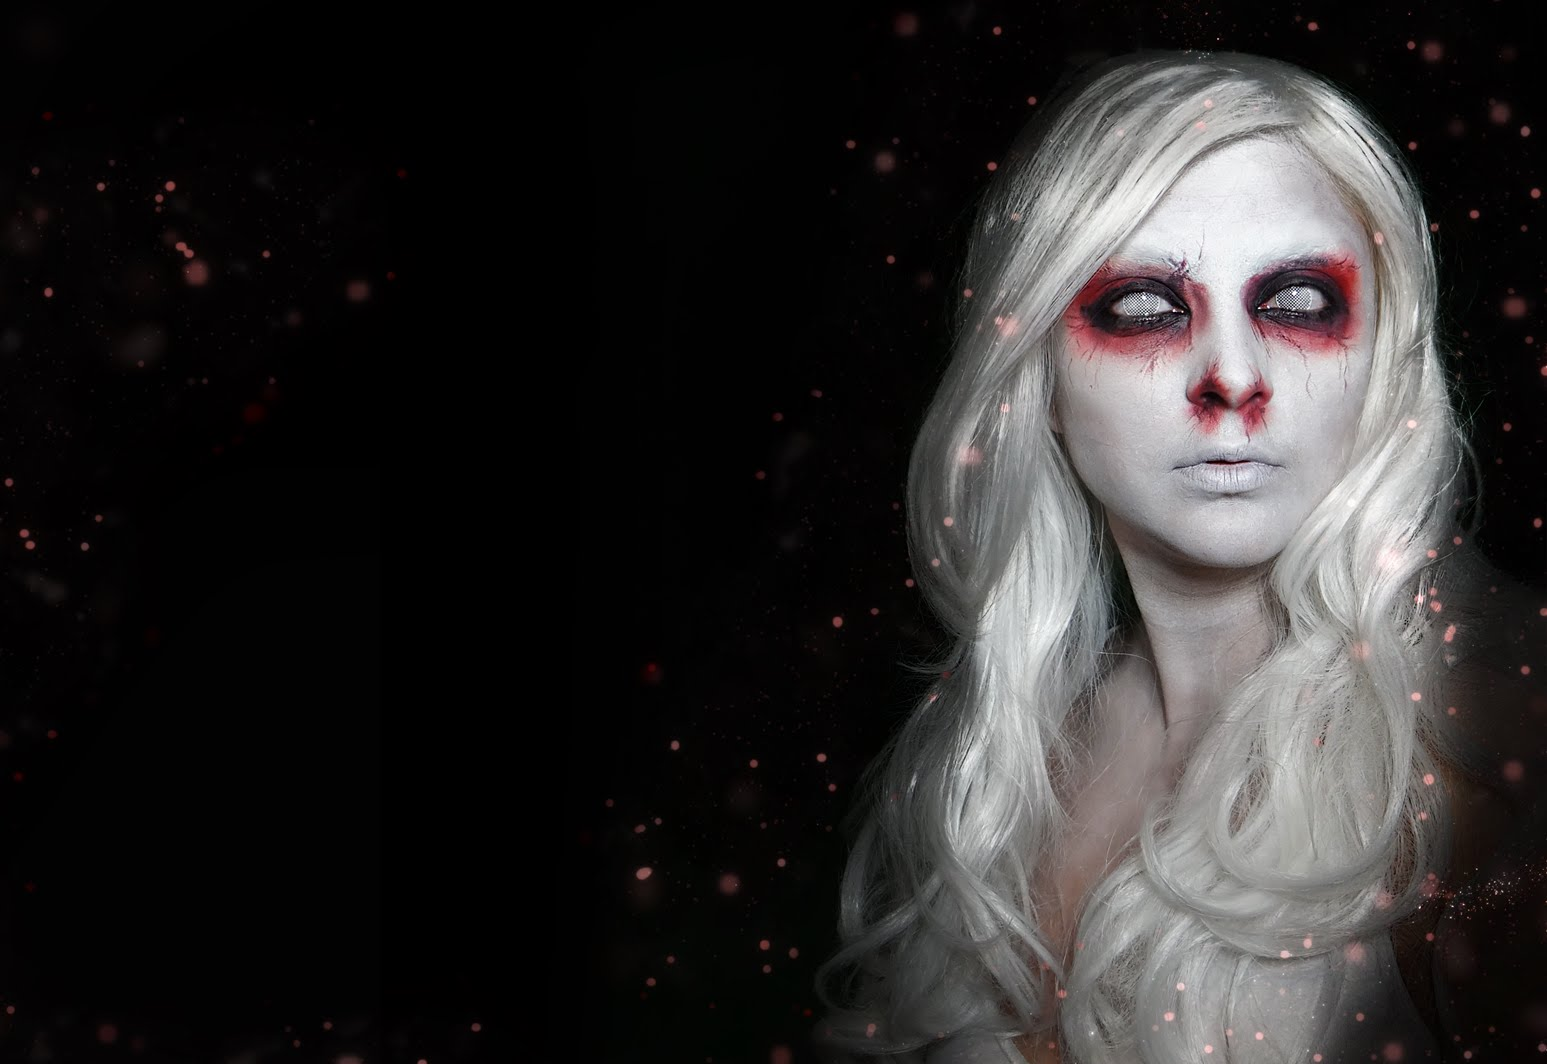 Ghost Woman Halloween Makeup | Vizitmir.com